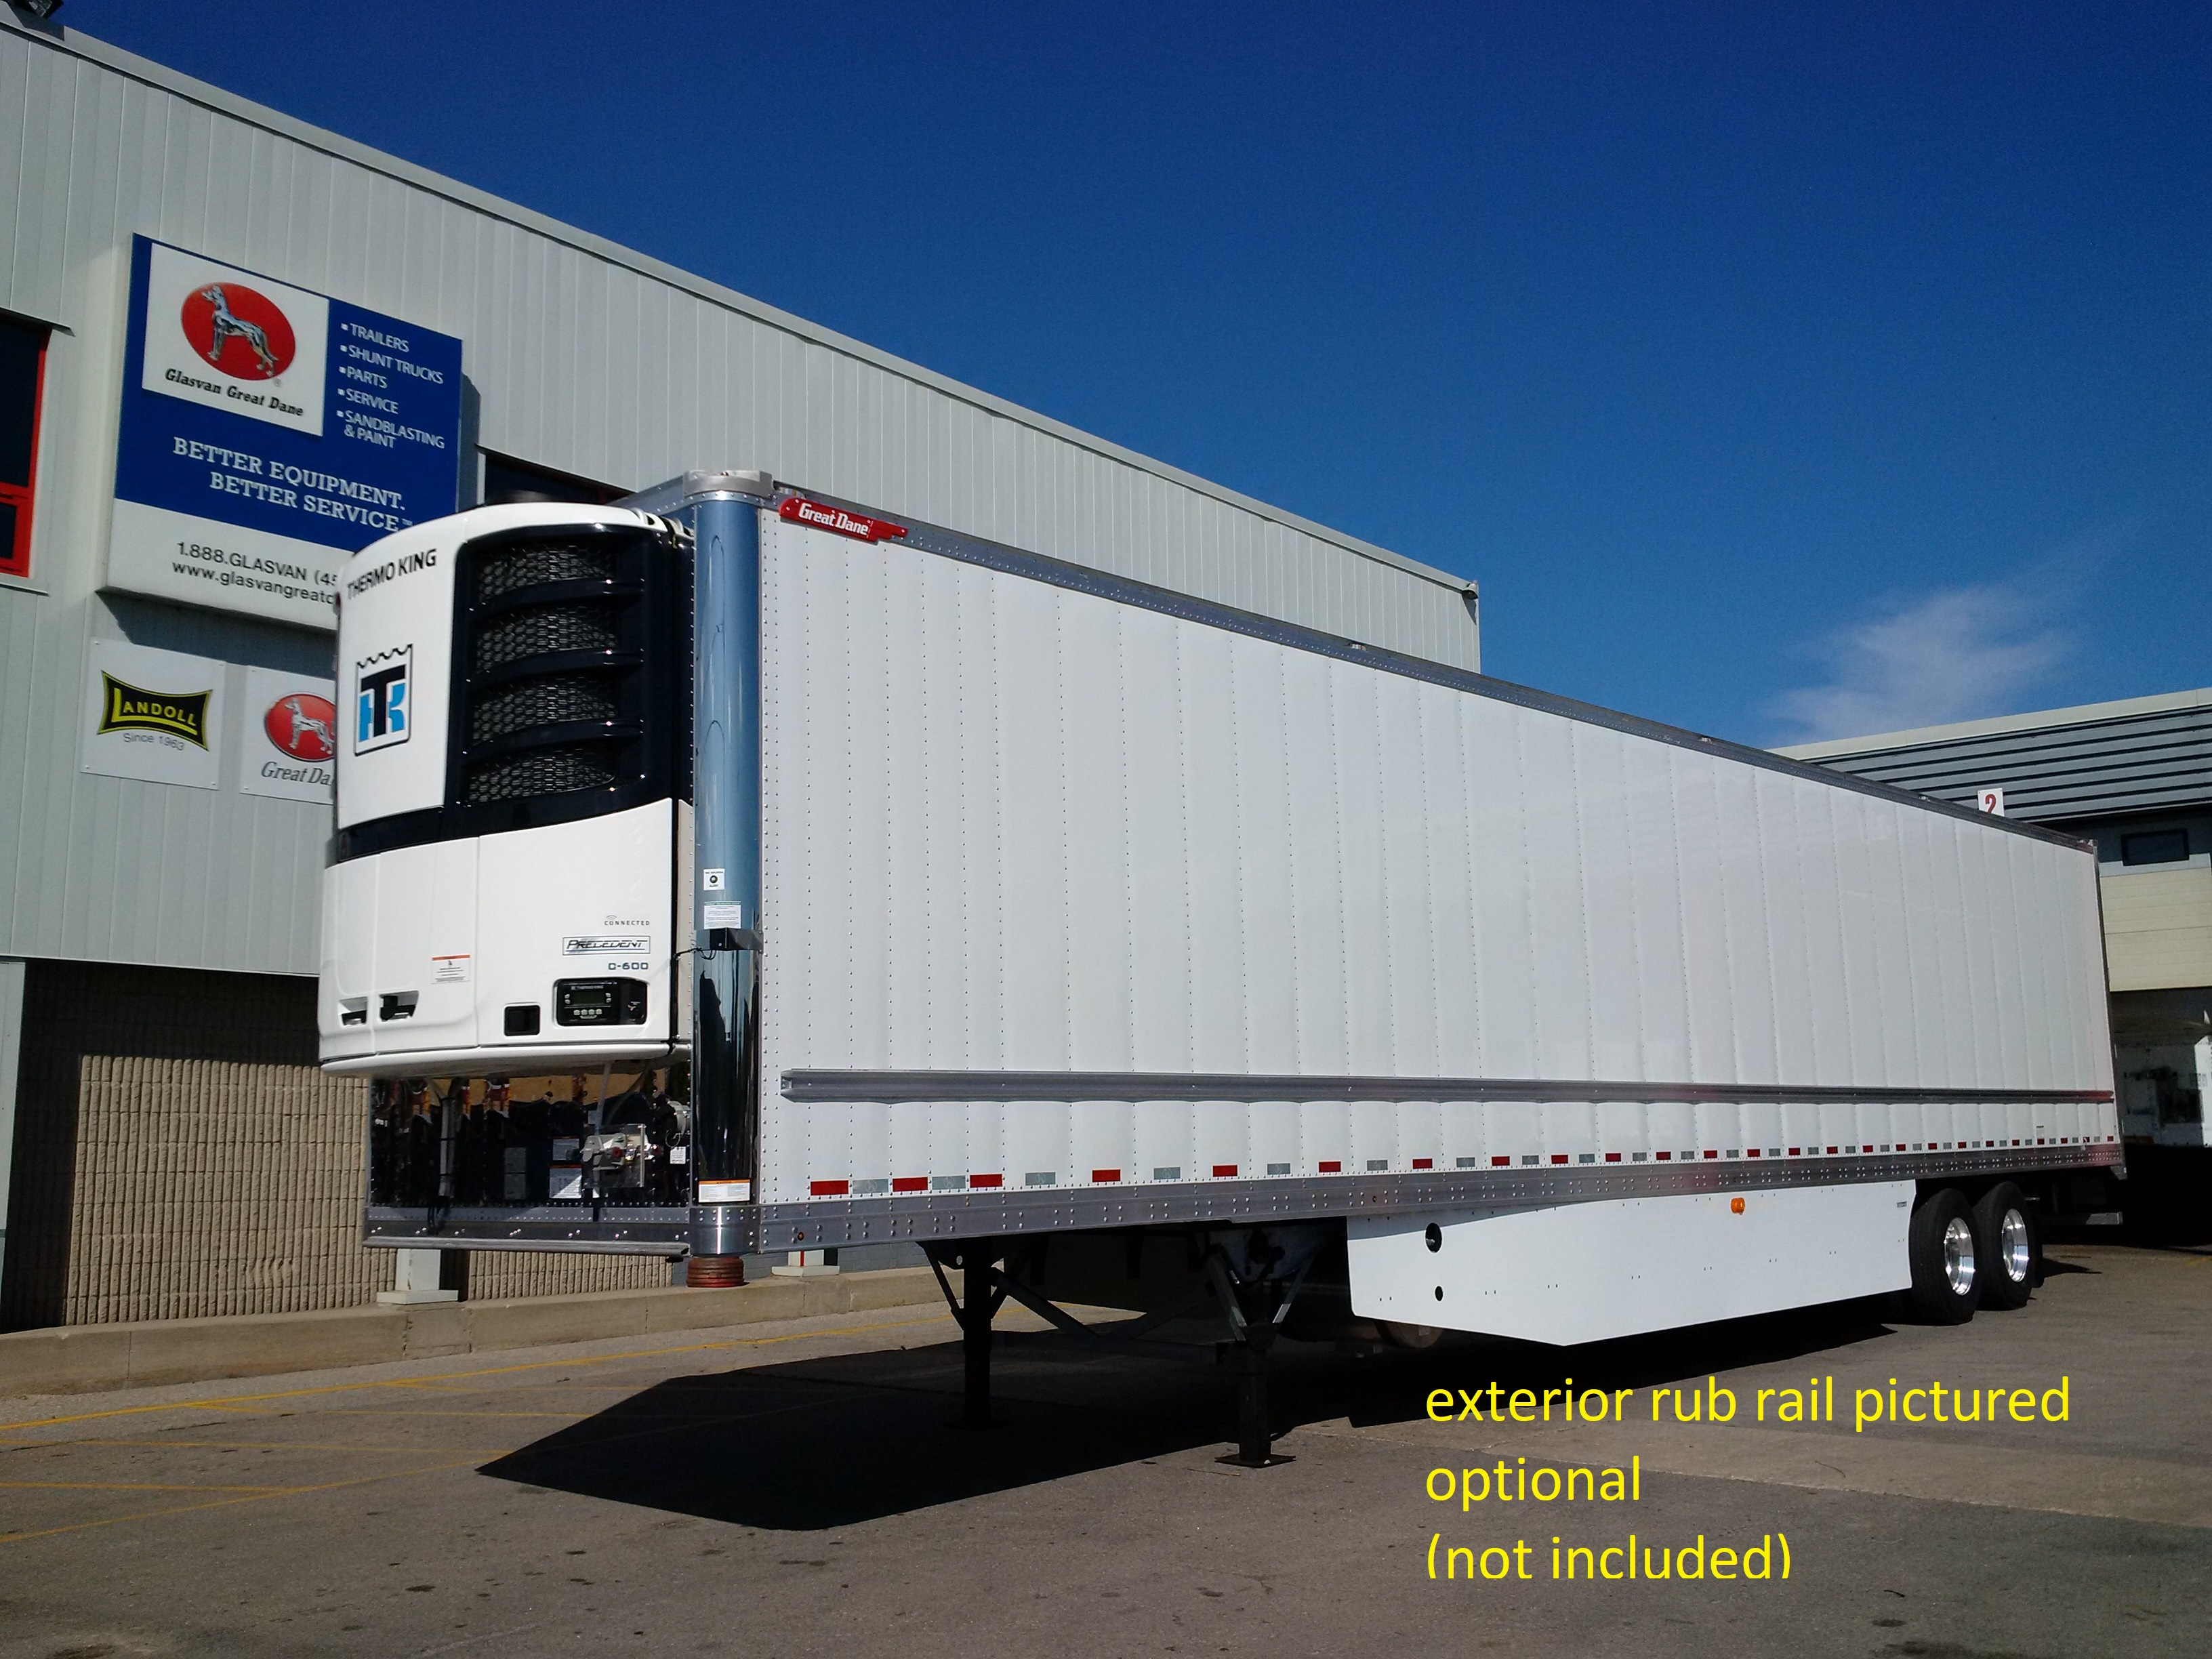 2020 GREAT DANE EVEREST EVEREST TANDEM HIGH CUBE REEFER TRAILERS